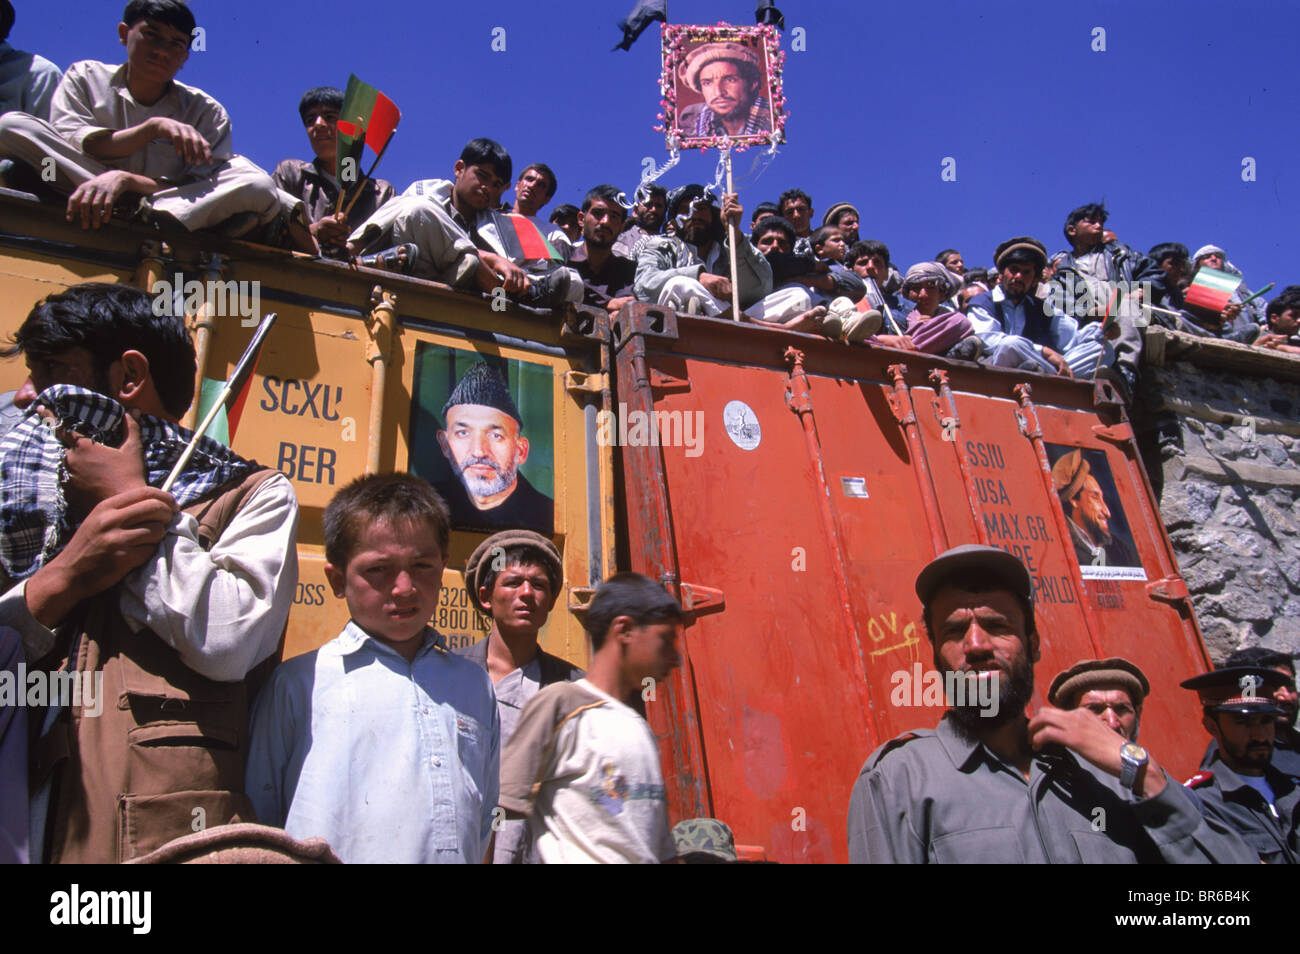 Boys and men line the roofs of buildings during a ceremony to honor Ahmad Shah Masood in the Panjshir Valley. - Stock Image